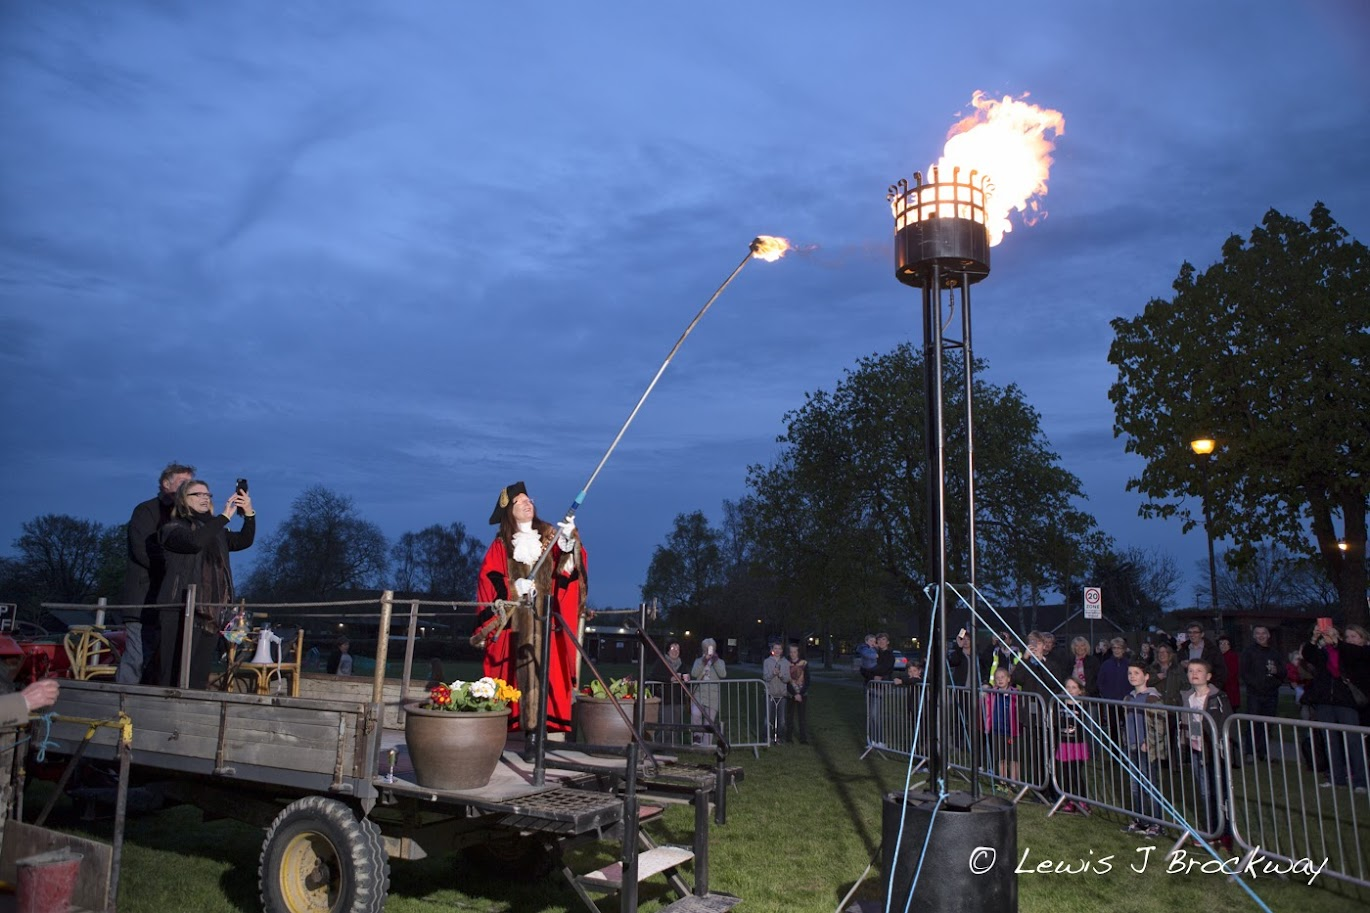 Photos The Queens 90th Birthday Beacon